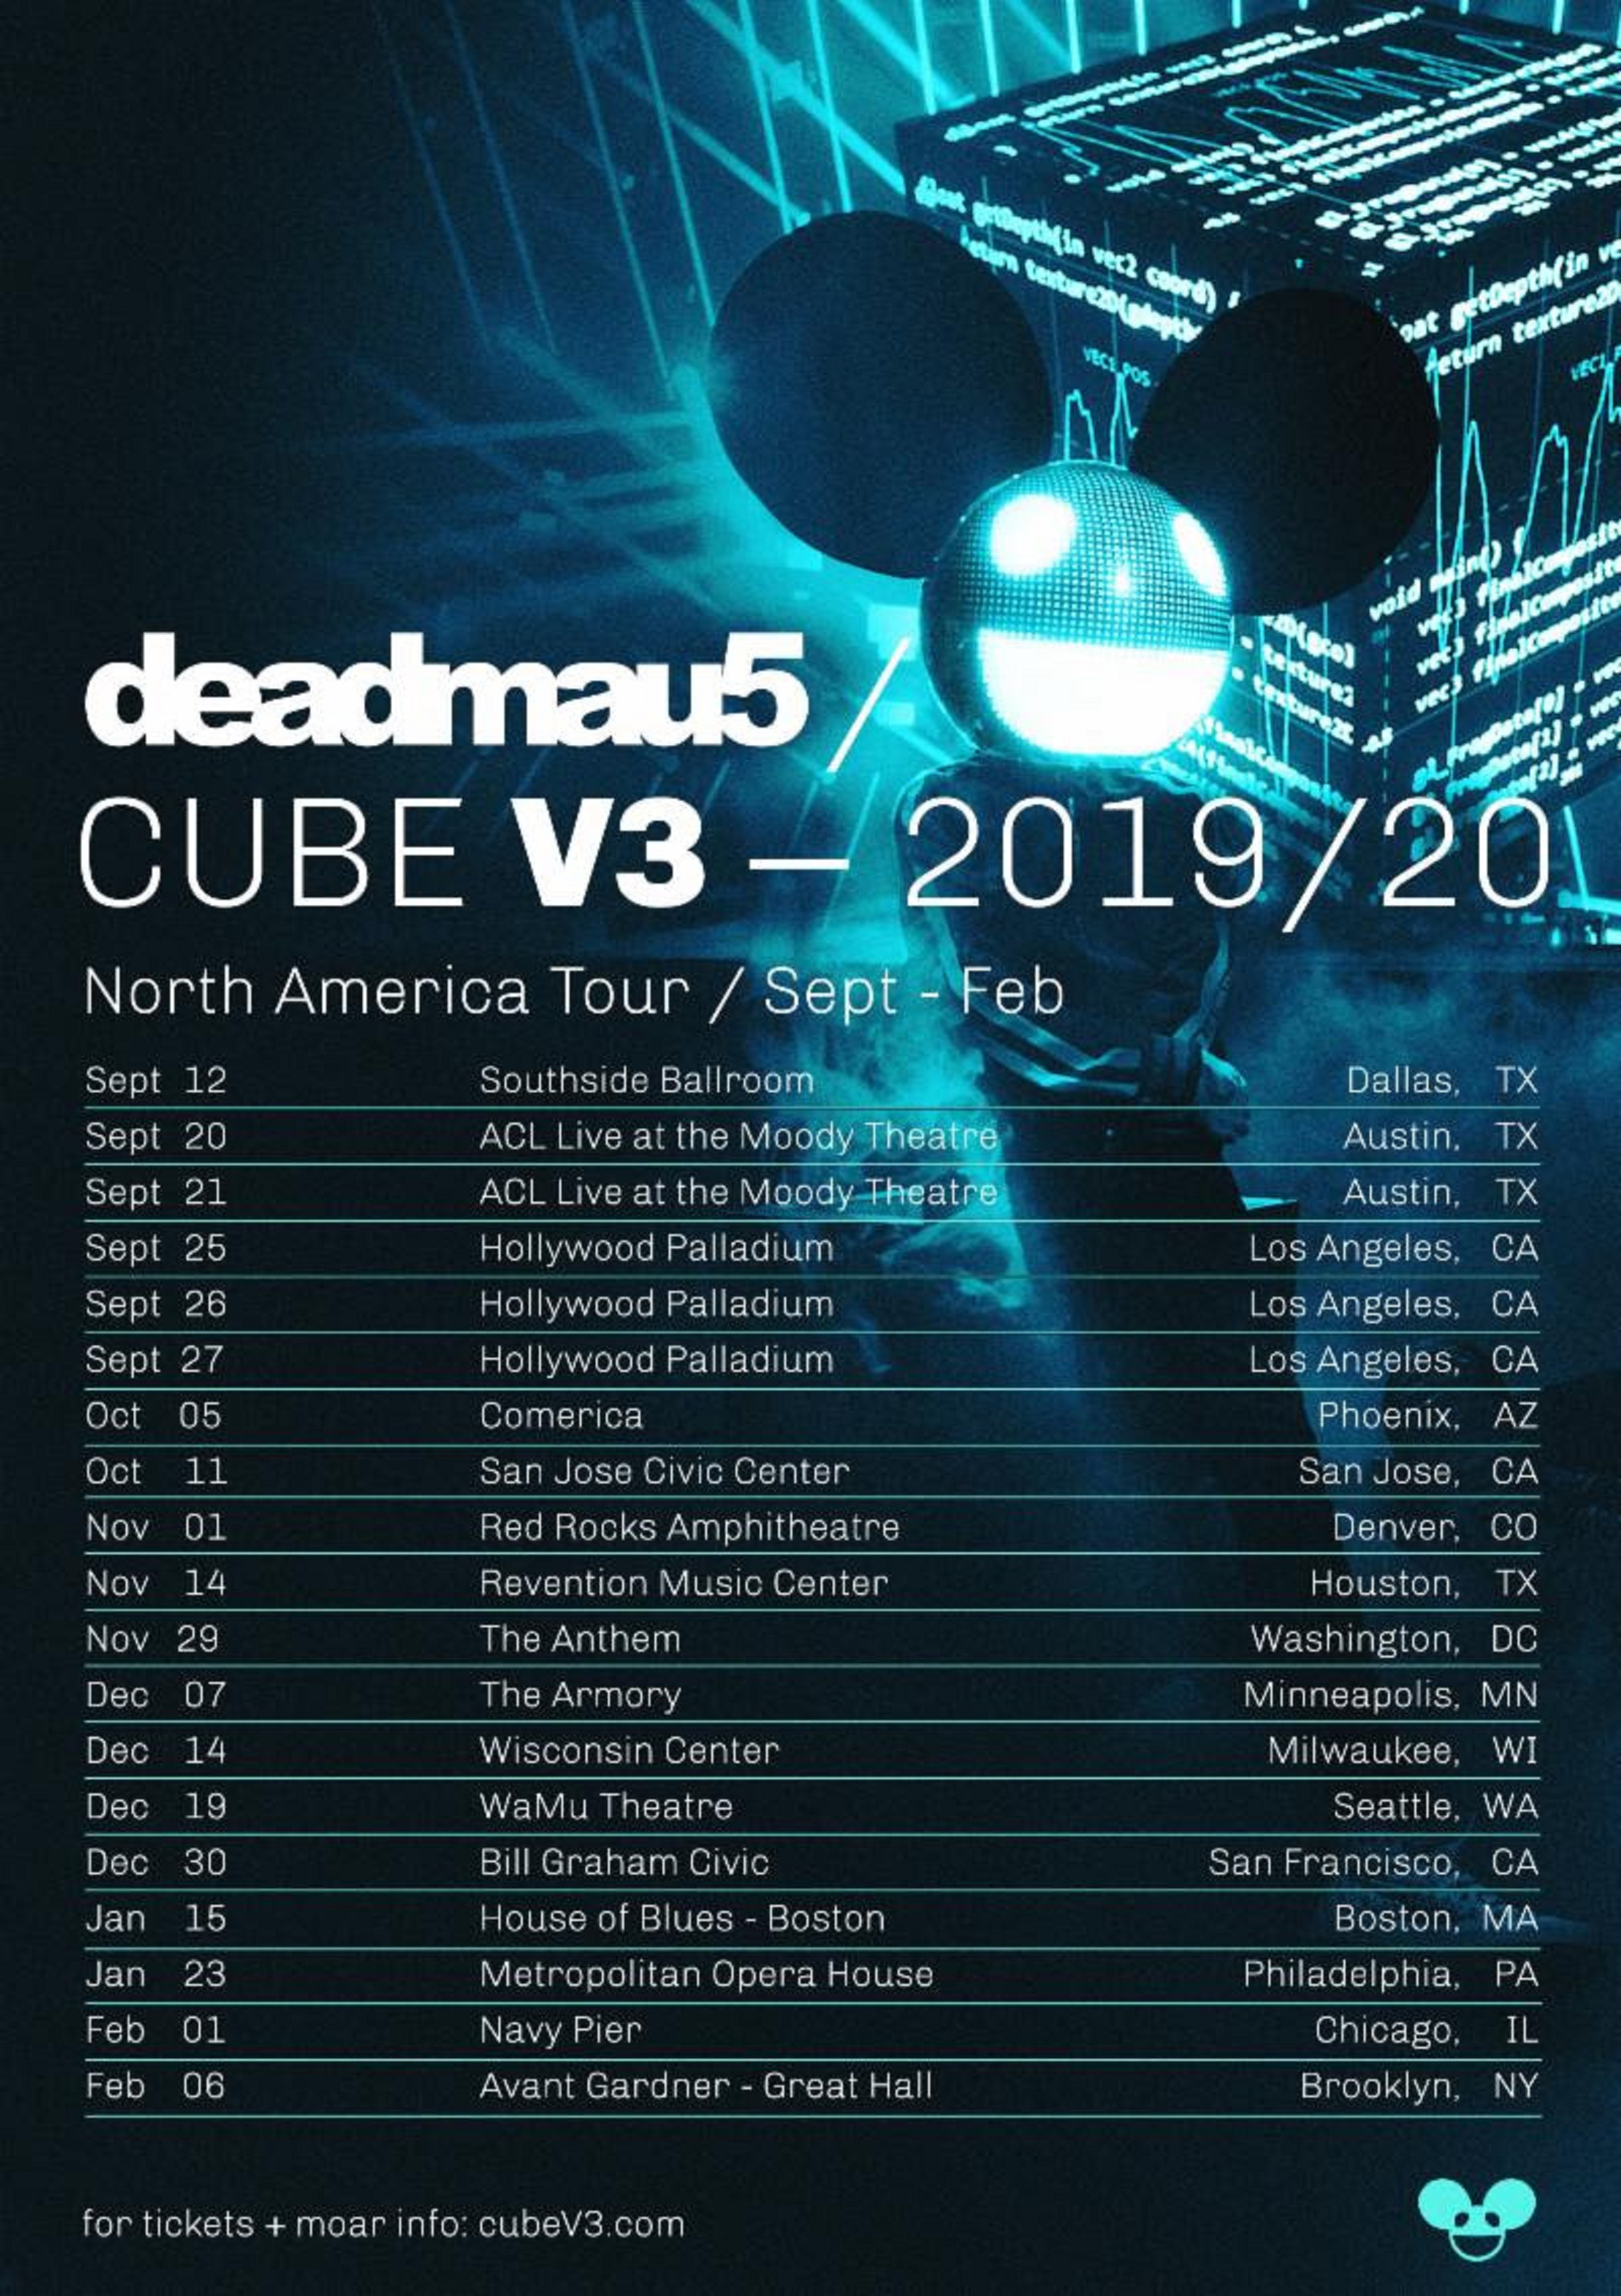 deadmau5 Announces 'Cube V3 Tour' North America 2019